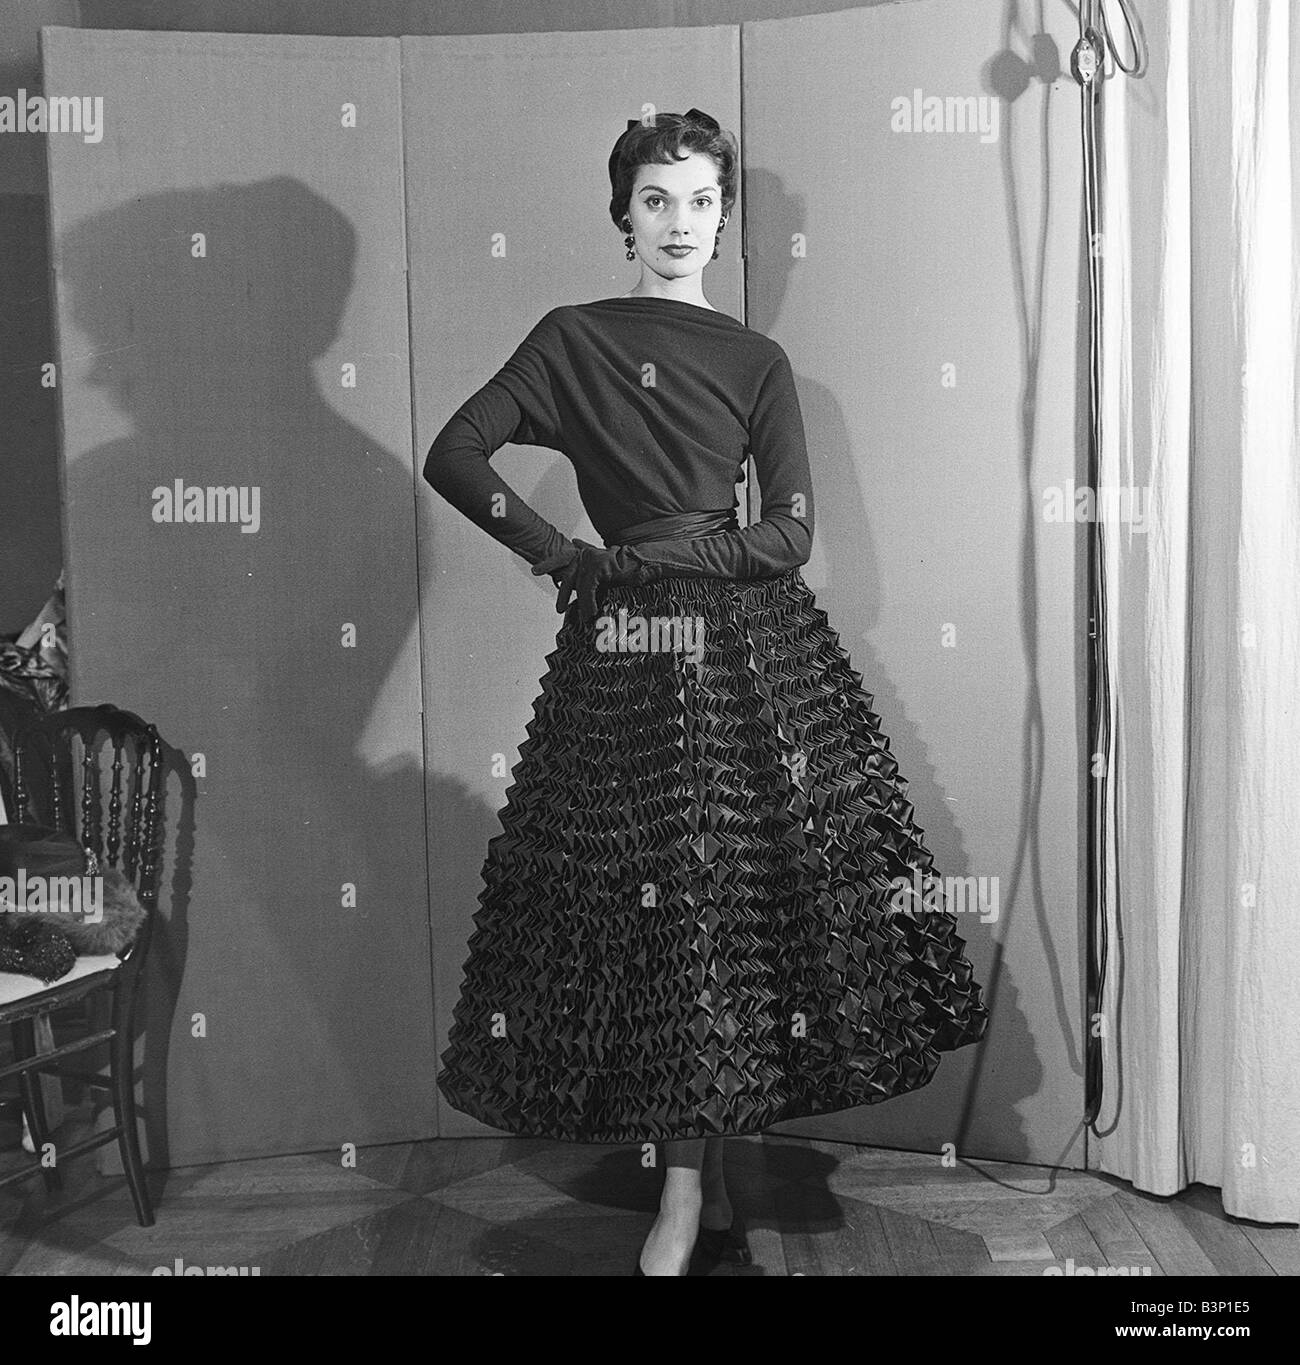 1950s Fashion Style Stock Photos & 1950s Fashion Style ...